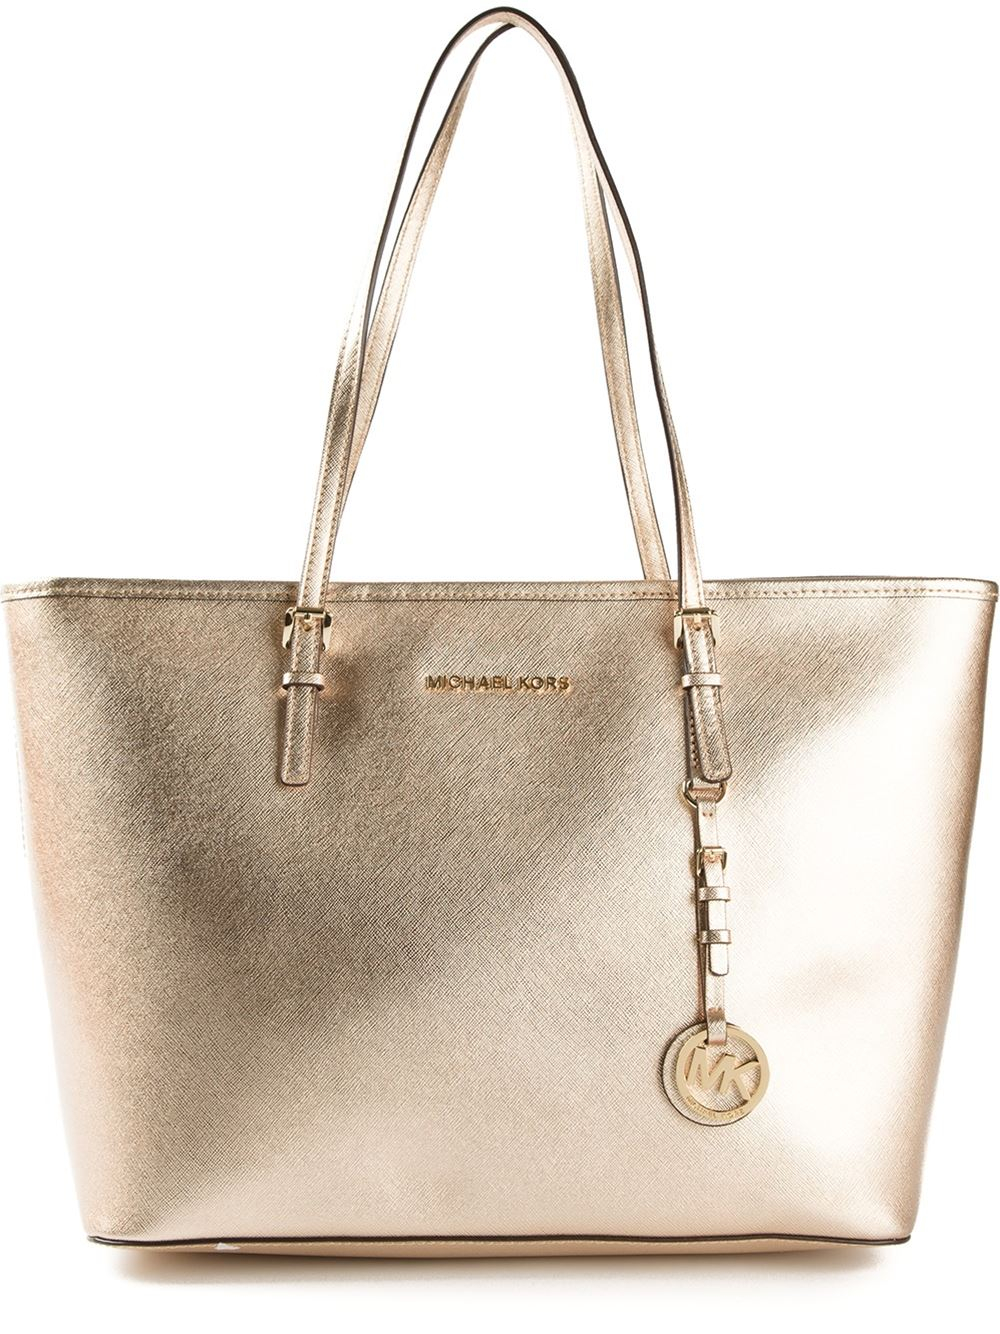 tote from michael michael kors pattern metallic material leather. Black Bedroom Furniture Sets. Home Design Ideas